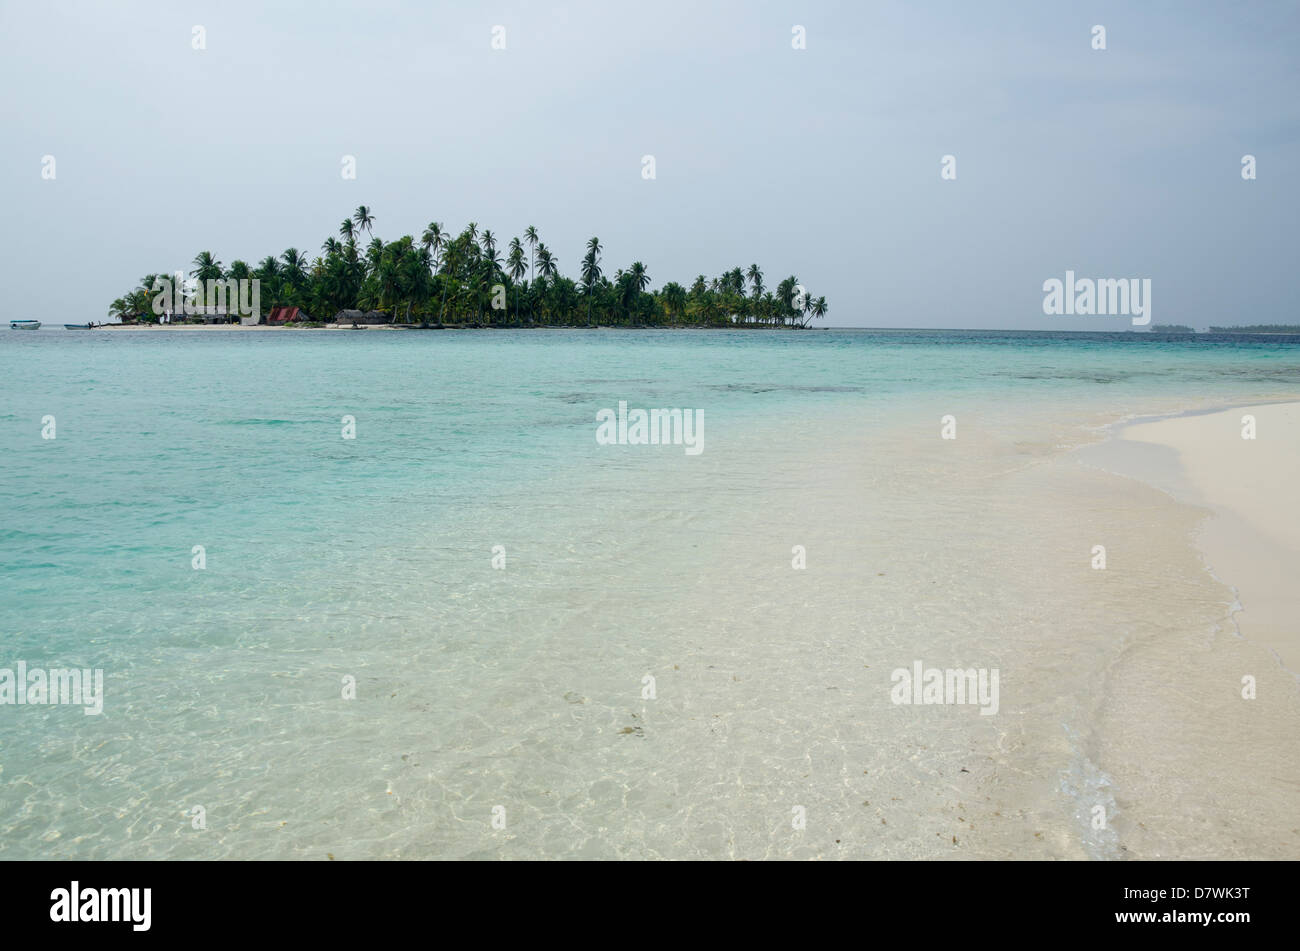 Distant  islands and Beach, San Blas Islands - Stock Image